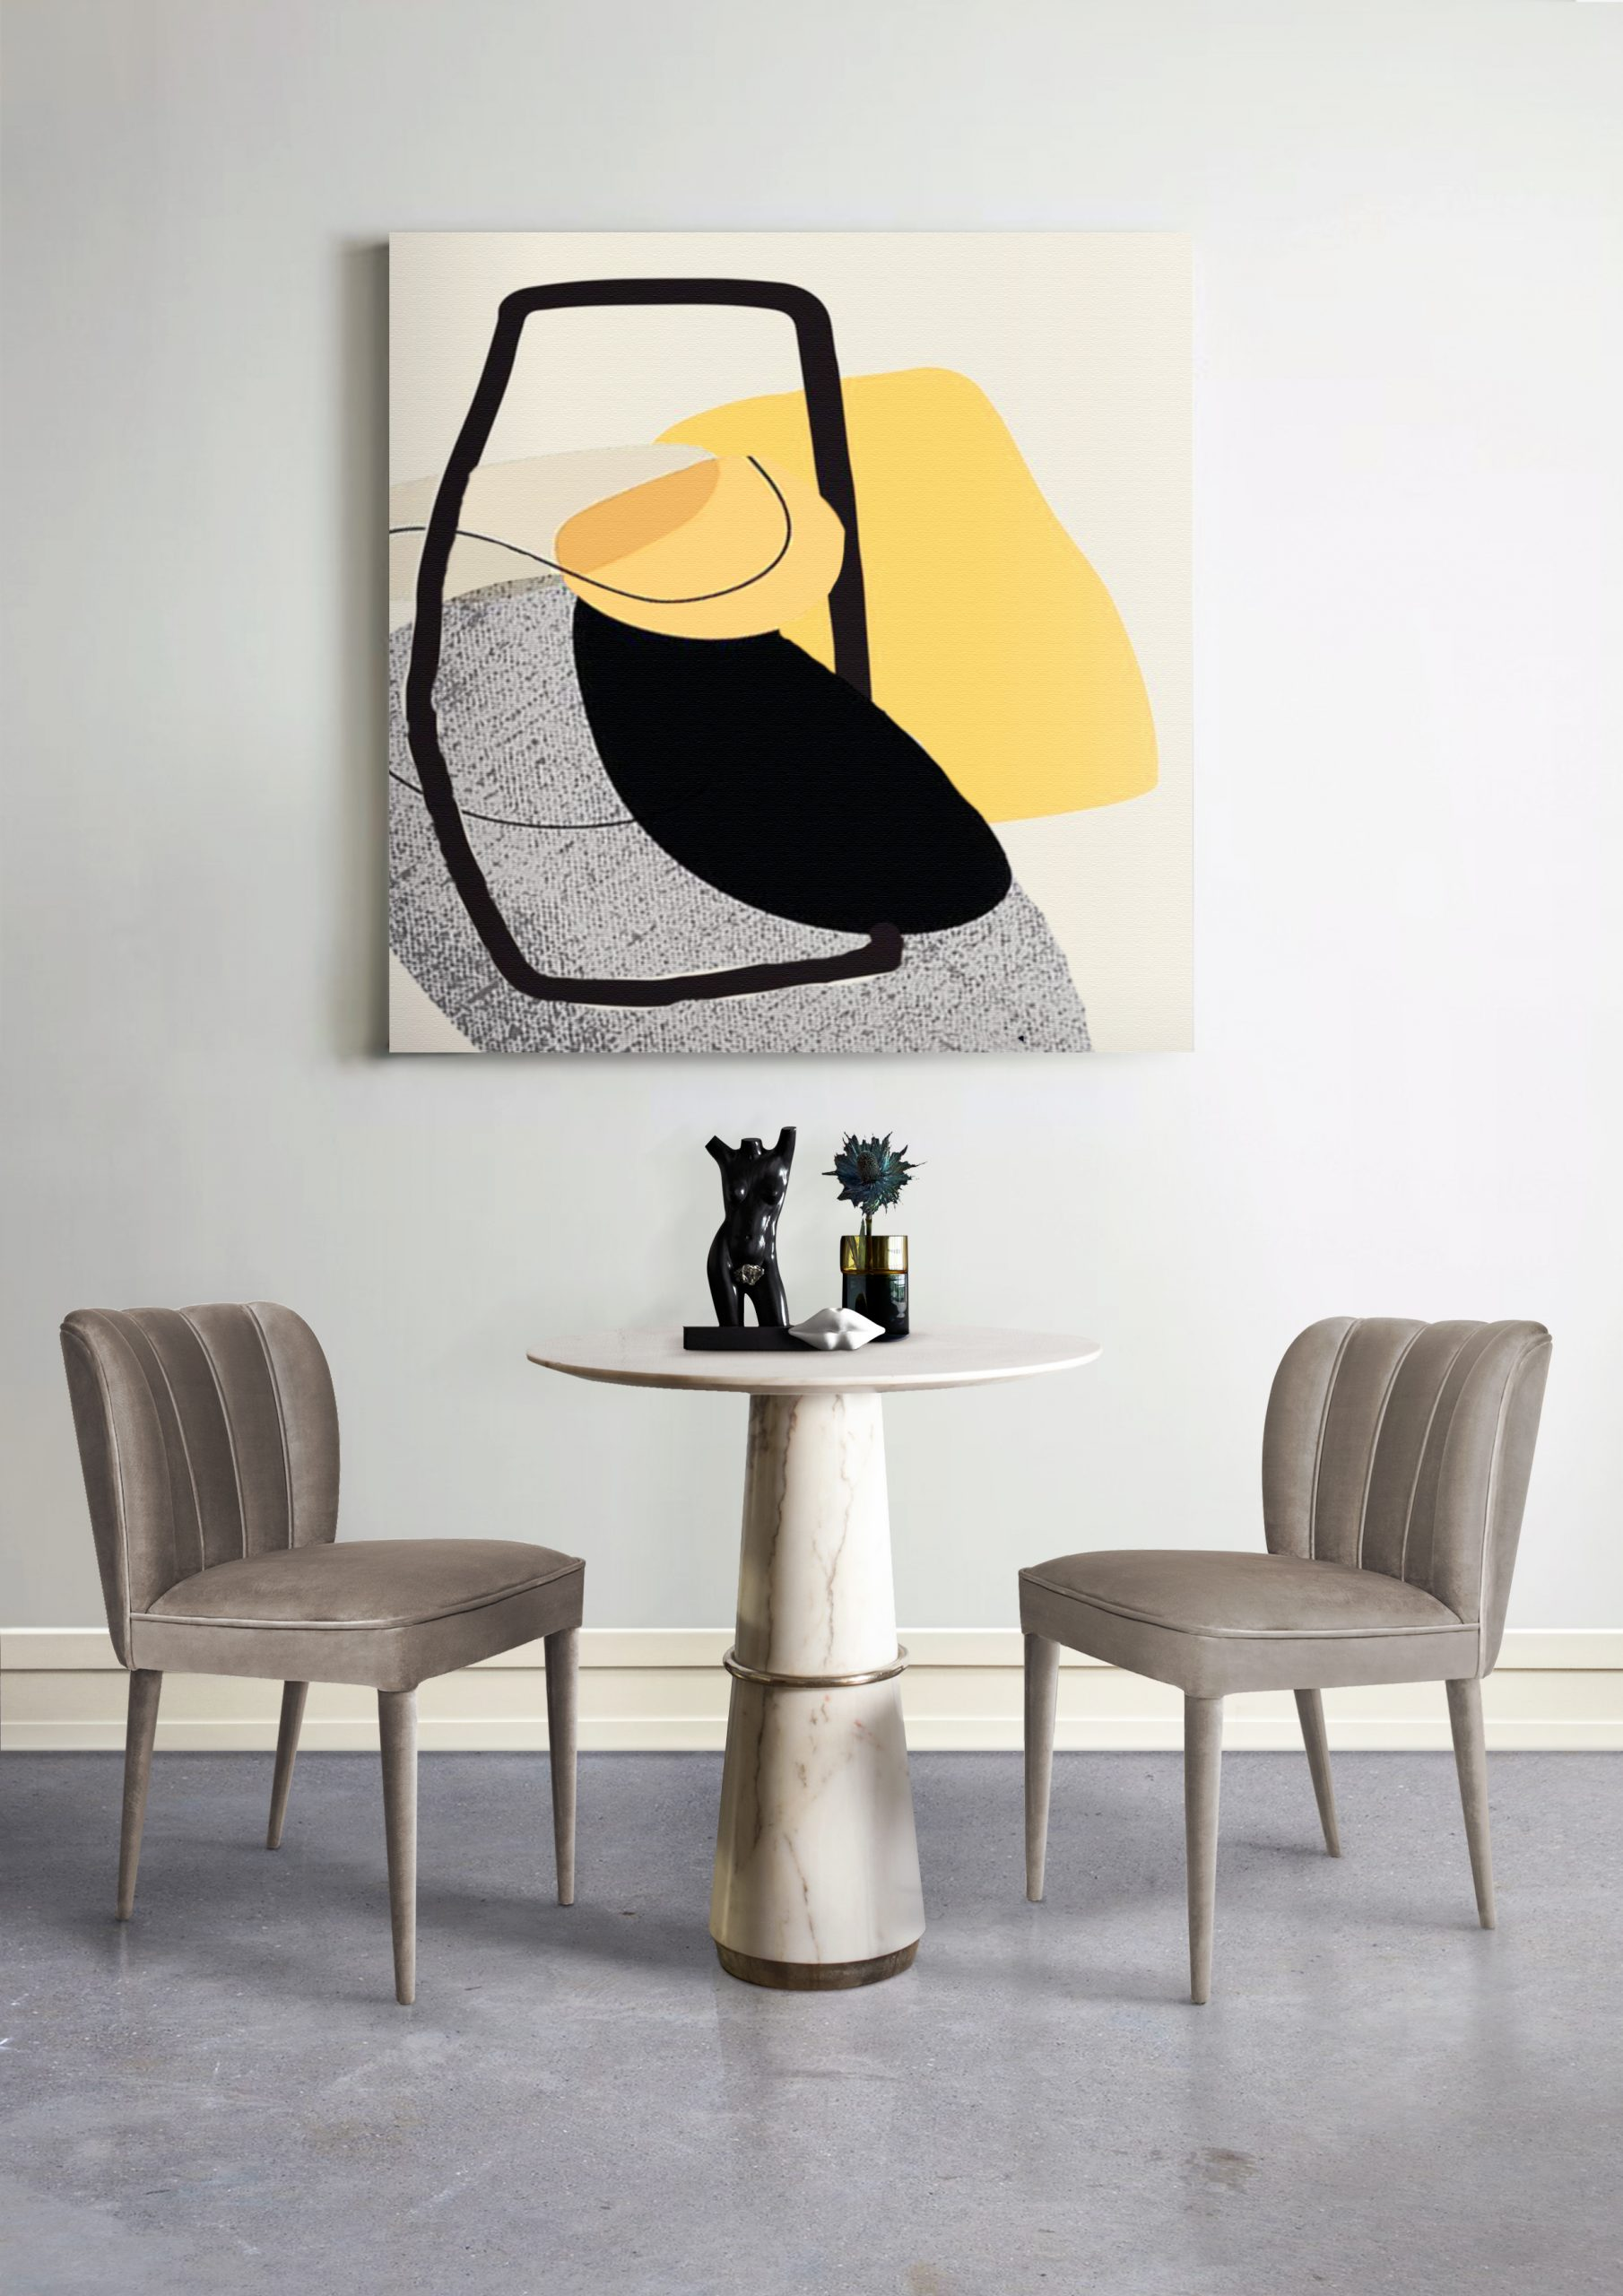 20 Dining Chairs You Will Need For A Modern Dining Room dining chairs 20 Dining Chairs You Will Need For A Modern Dining Room agra coffe table dalyan dining scaled